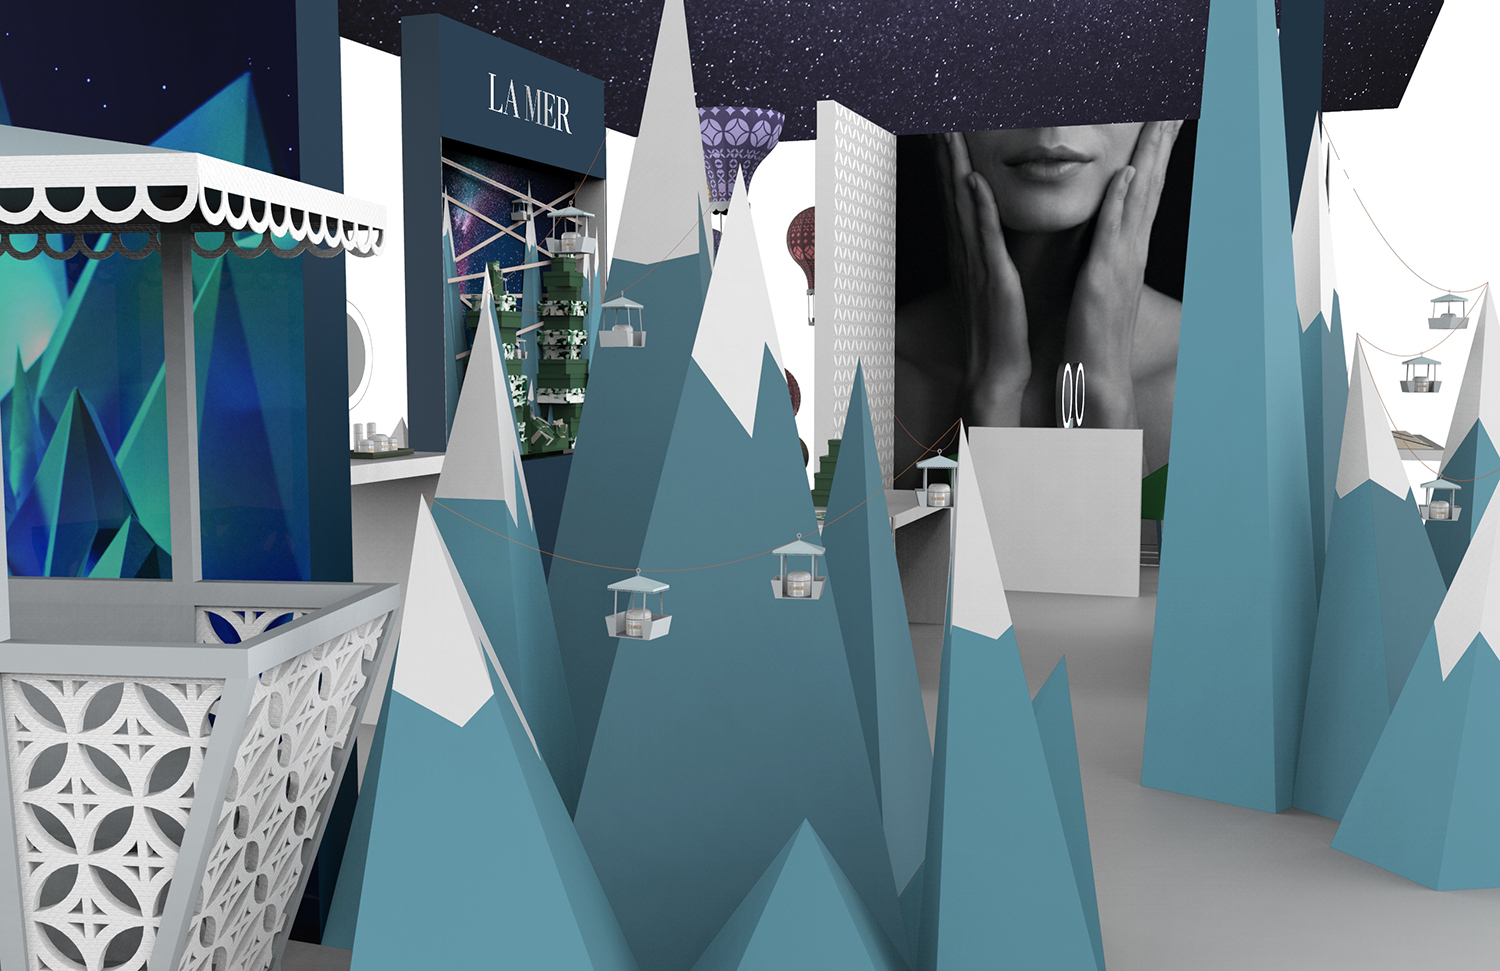 the_wieland_initiative_la_mer_holiday_event_mountain.jpg